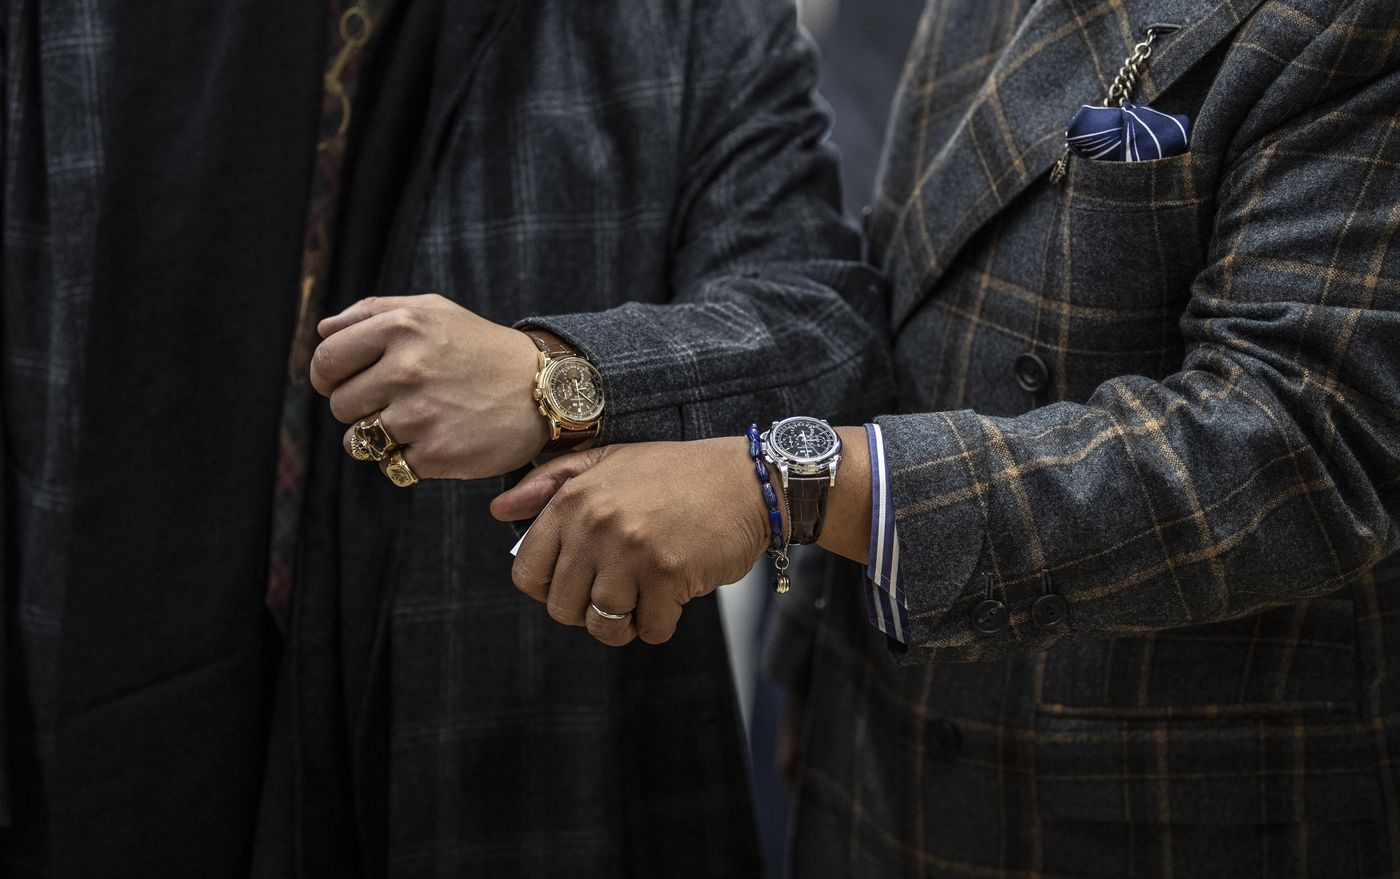 The Watches team at Phillips in Association with Bacs & Russo reflects on how they managed to maintain momentum throughout 2018 after smashing auction records, again and again, the previous year.